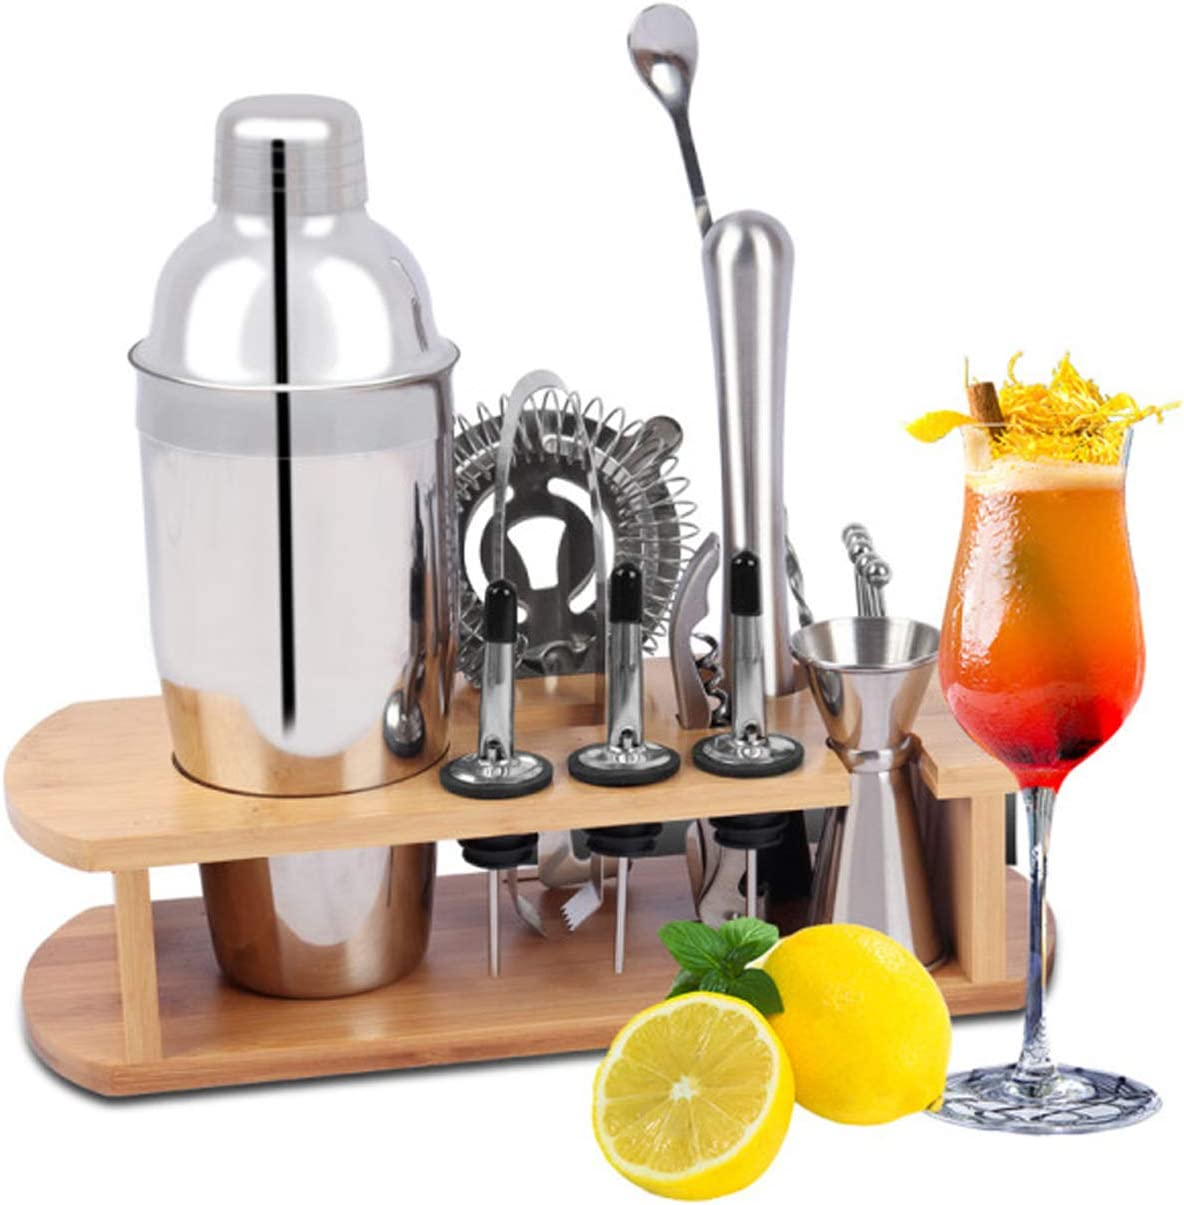 Innotic Cocktail Making Set 16 PCS Professional Stainless Steel Built-in Shaker WAS £19.99 (£17.99 PRIME) NOW £9.99 (£8.99 PRIME) w/code AK2QQ6SB @ Amazon